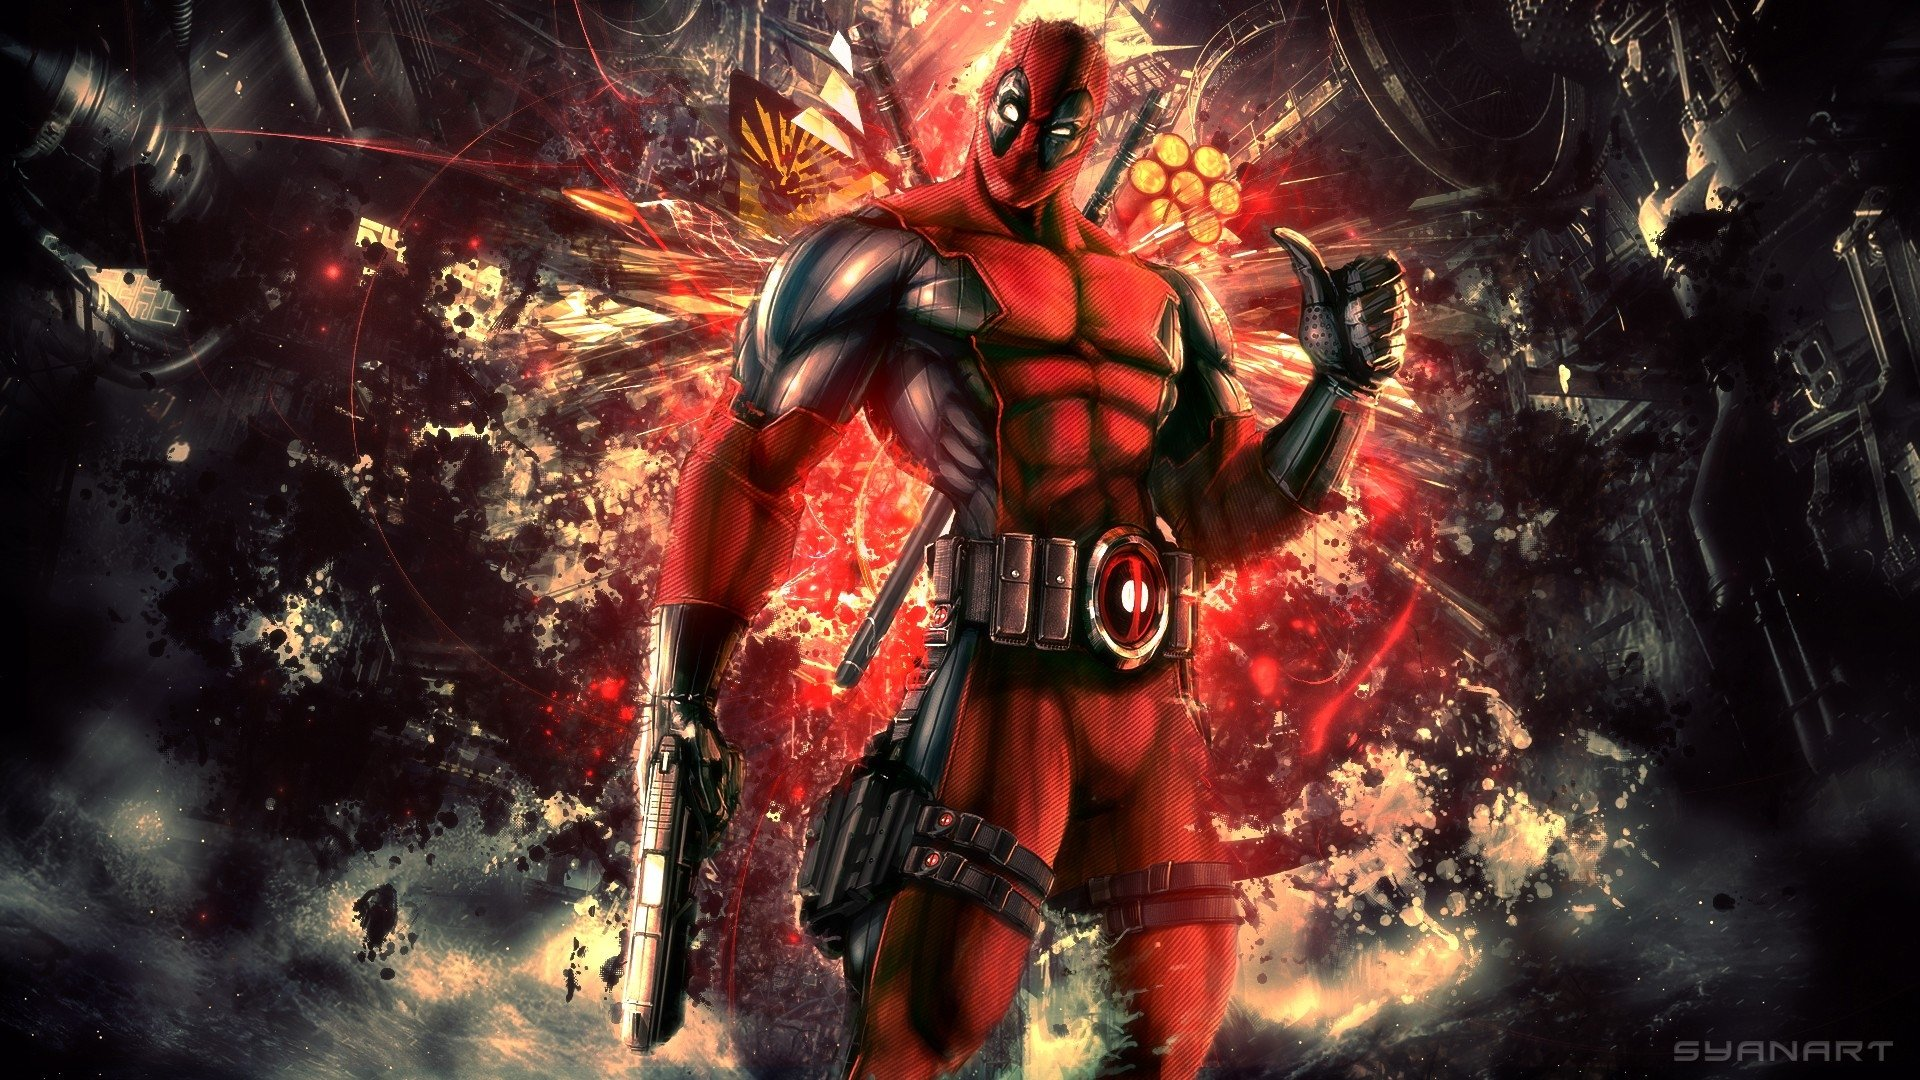 772 Deadpool HD Wallpapers   Background Images   Wallpaper Abyss HD Wallpaper   Background Image ID 417300  1920x1080 Comics Deadpool